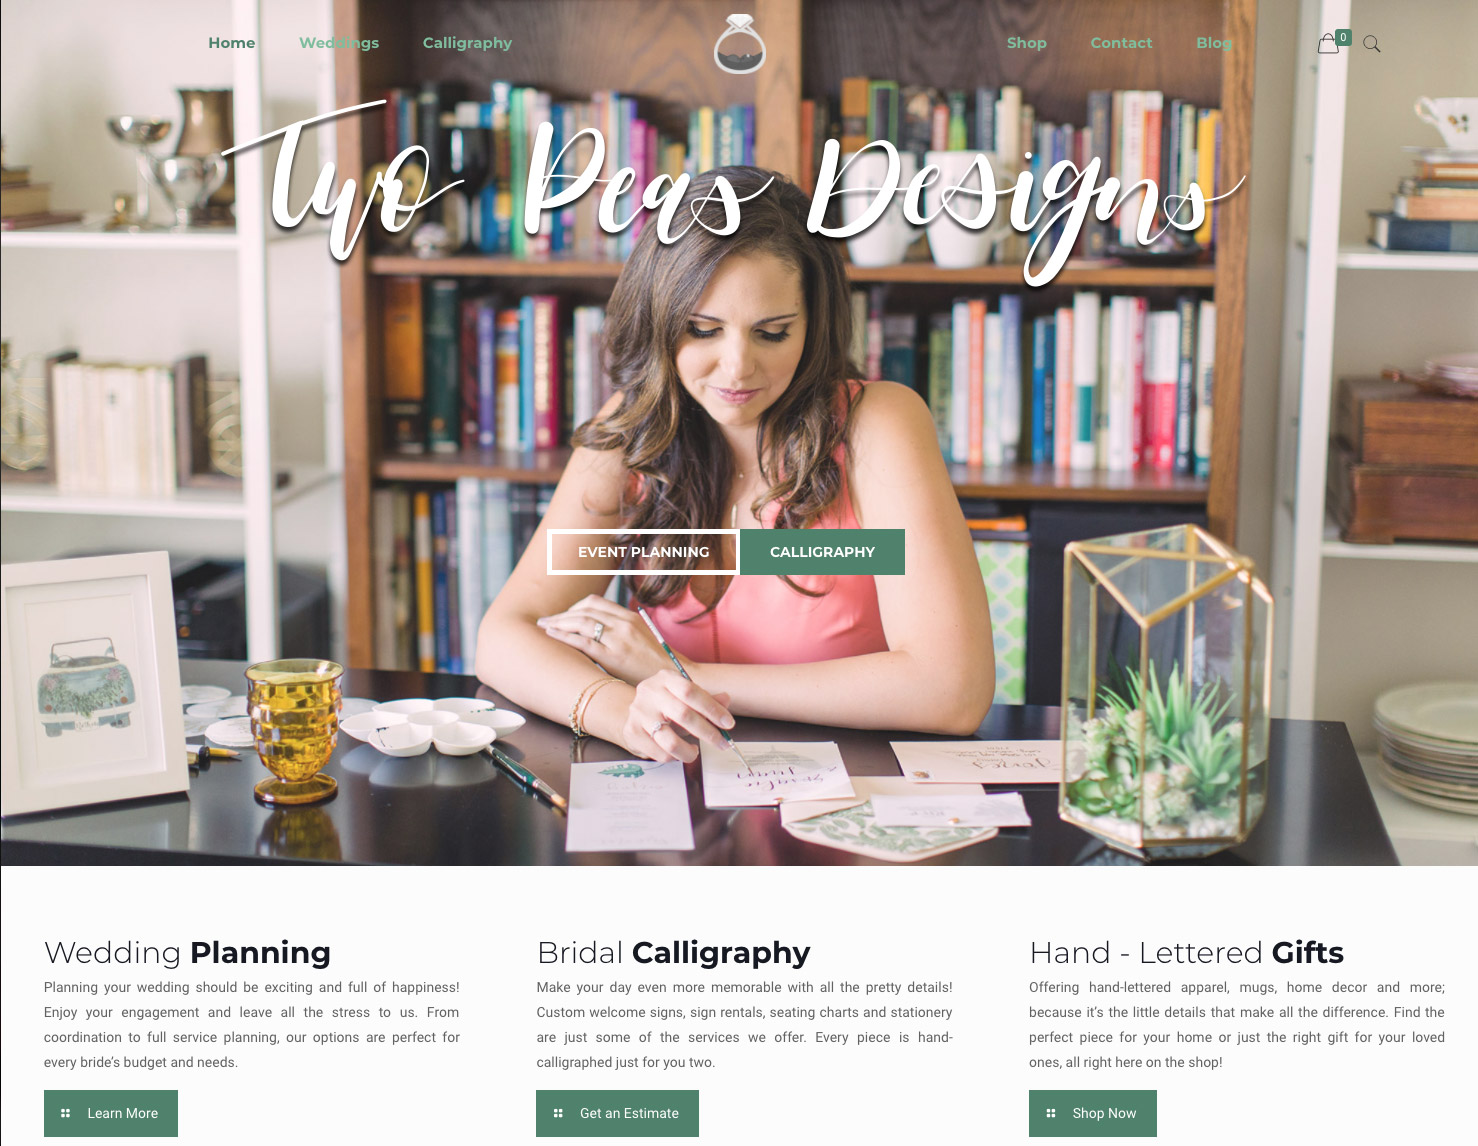 Wedding Planner Website Design | Calligrapher Website Design